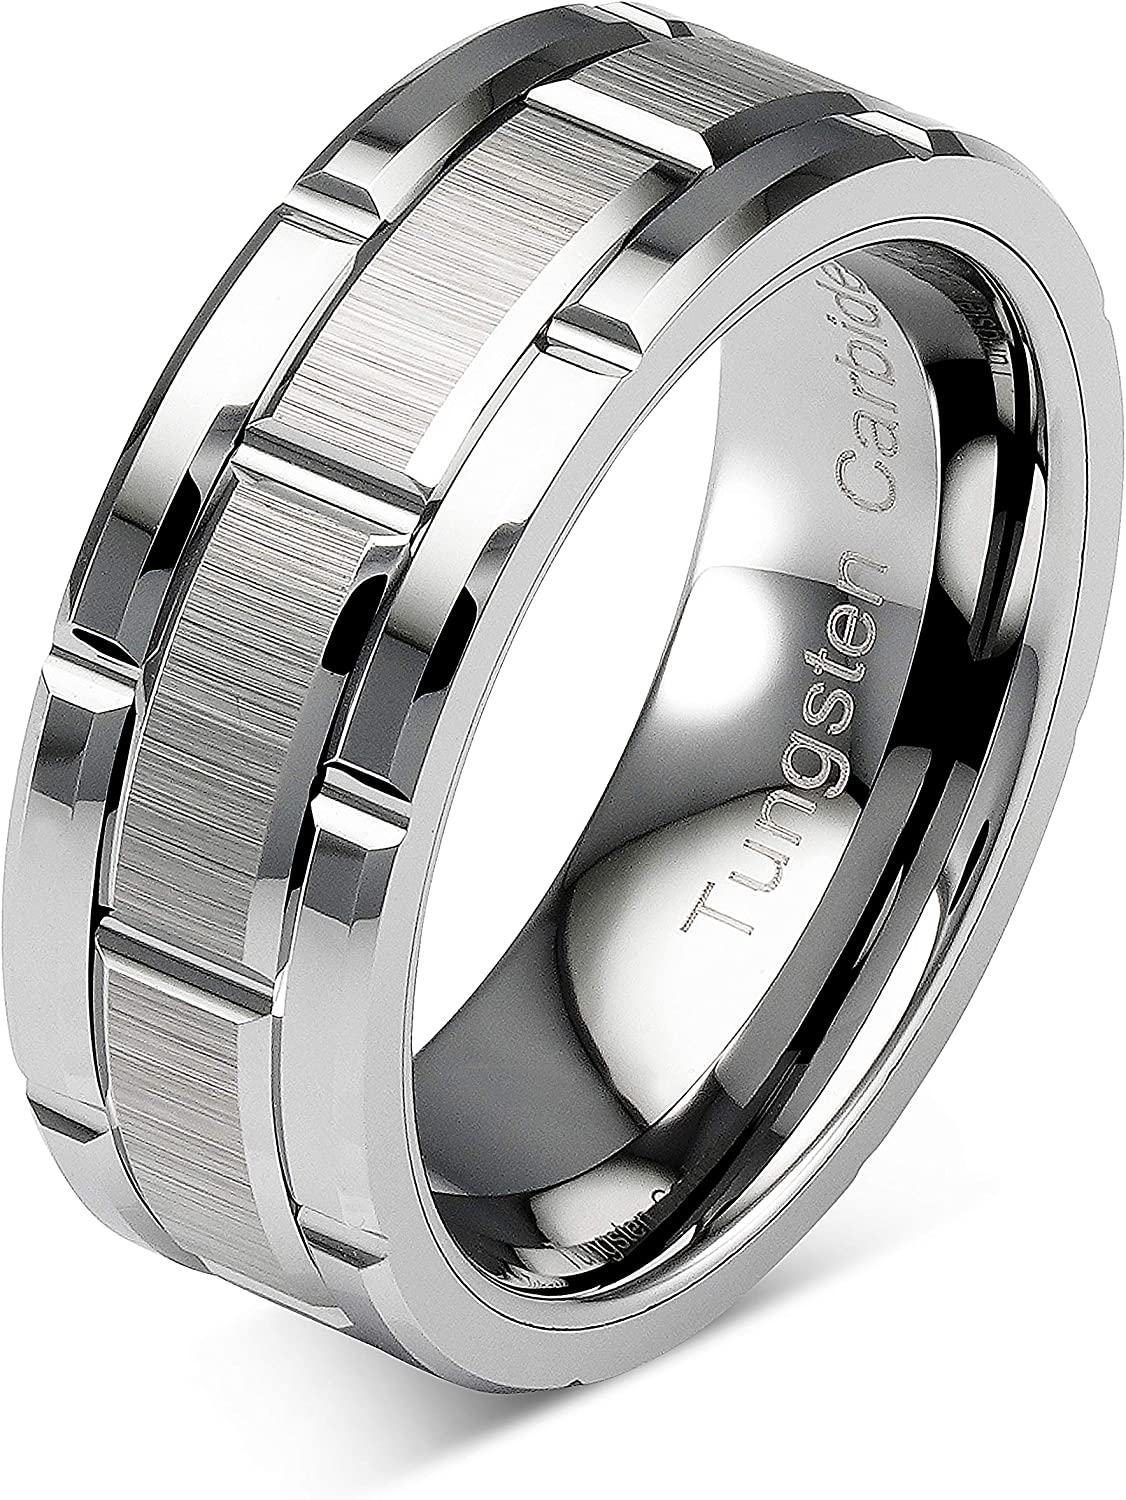 100S JEWELRY Tungsten Rings For Men Wedding Band Silver Brick Pattern Brushed Engagement Promise Size 6-16